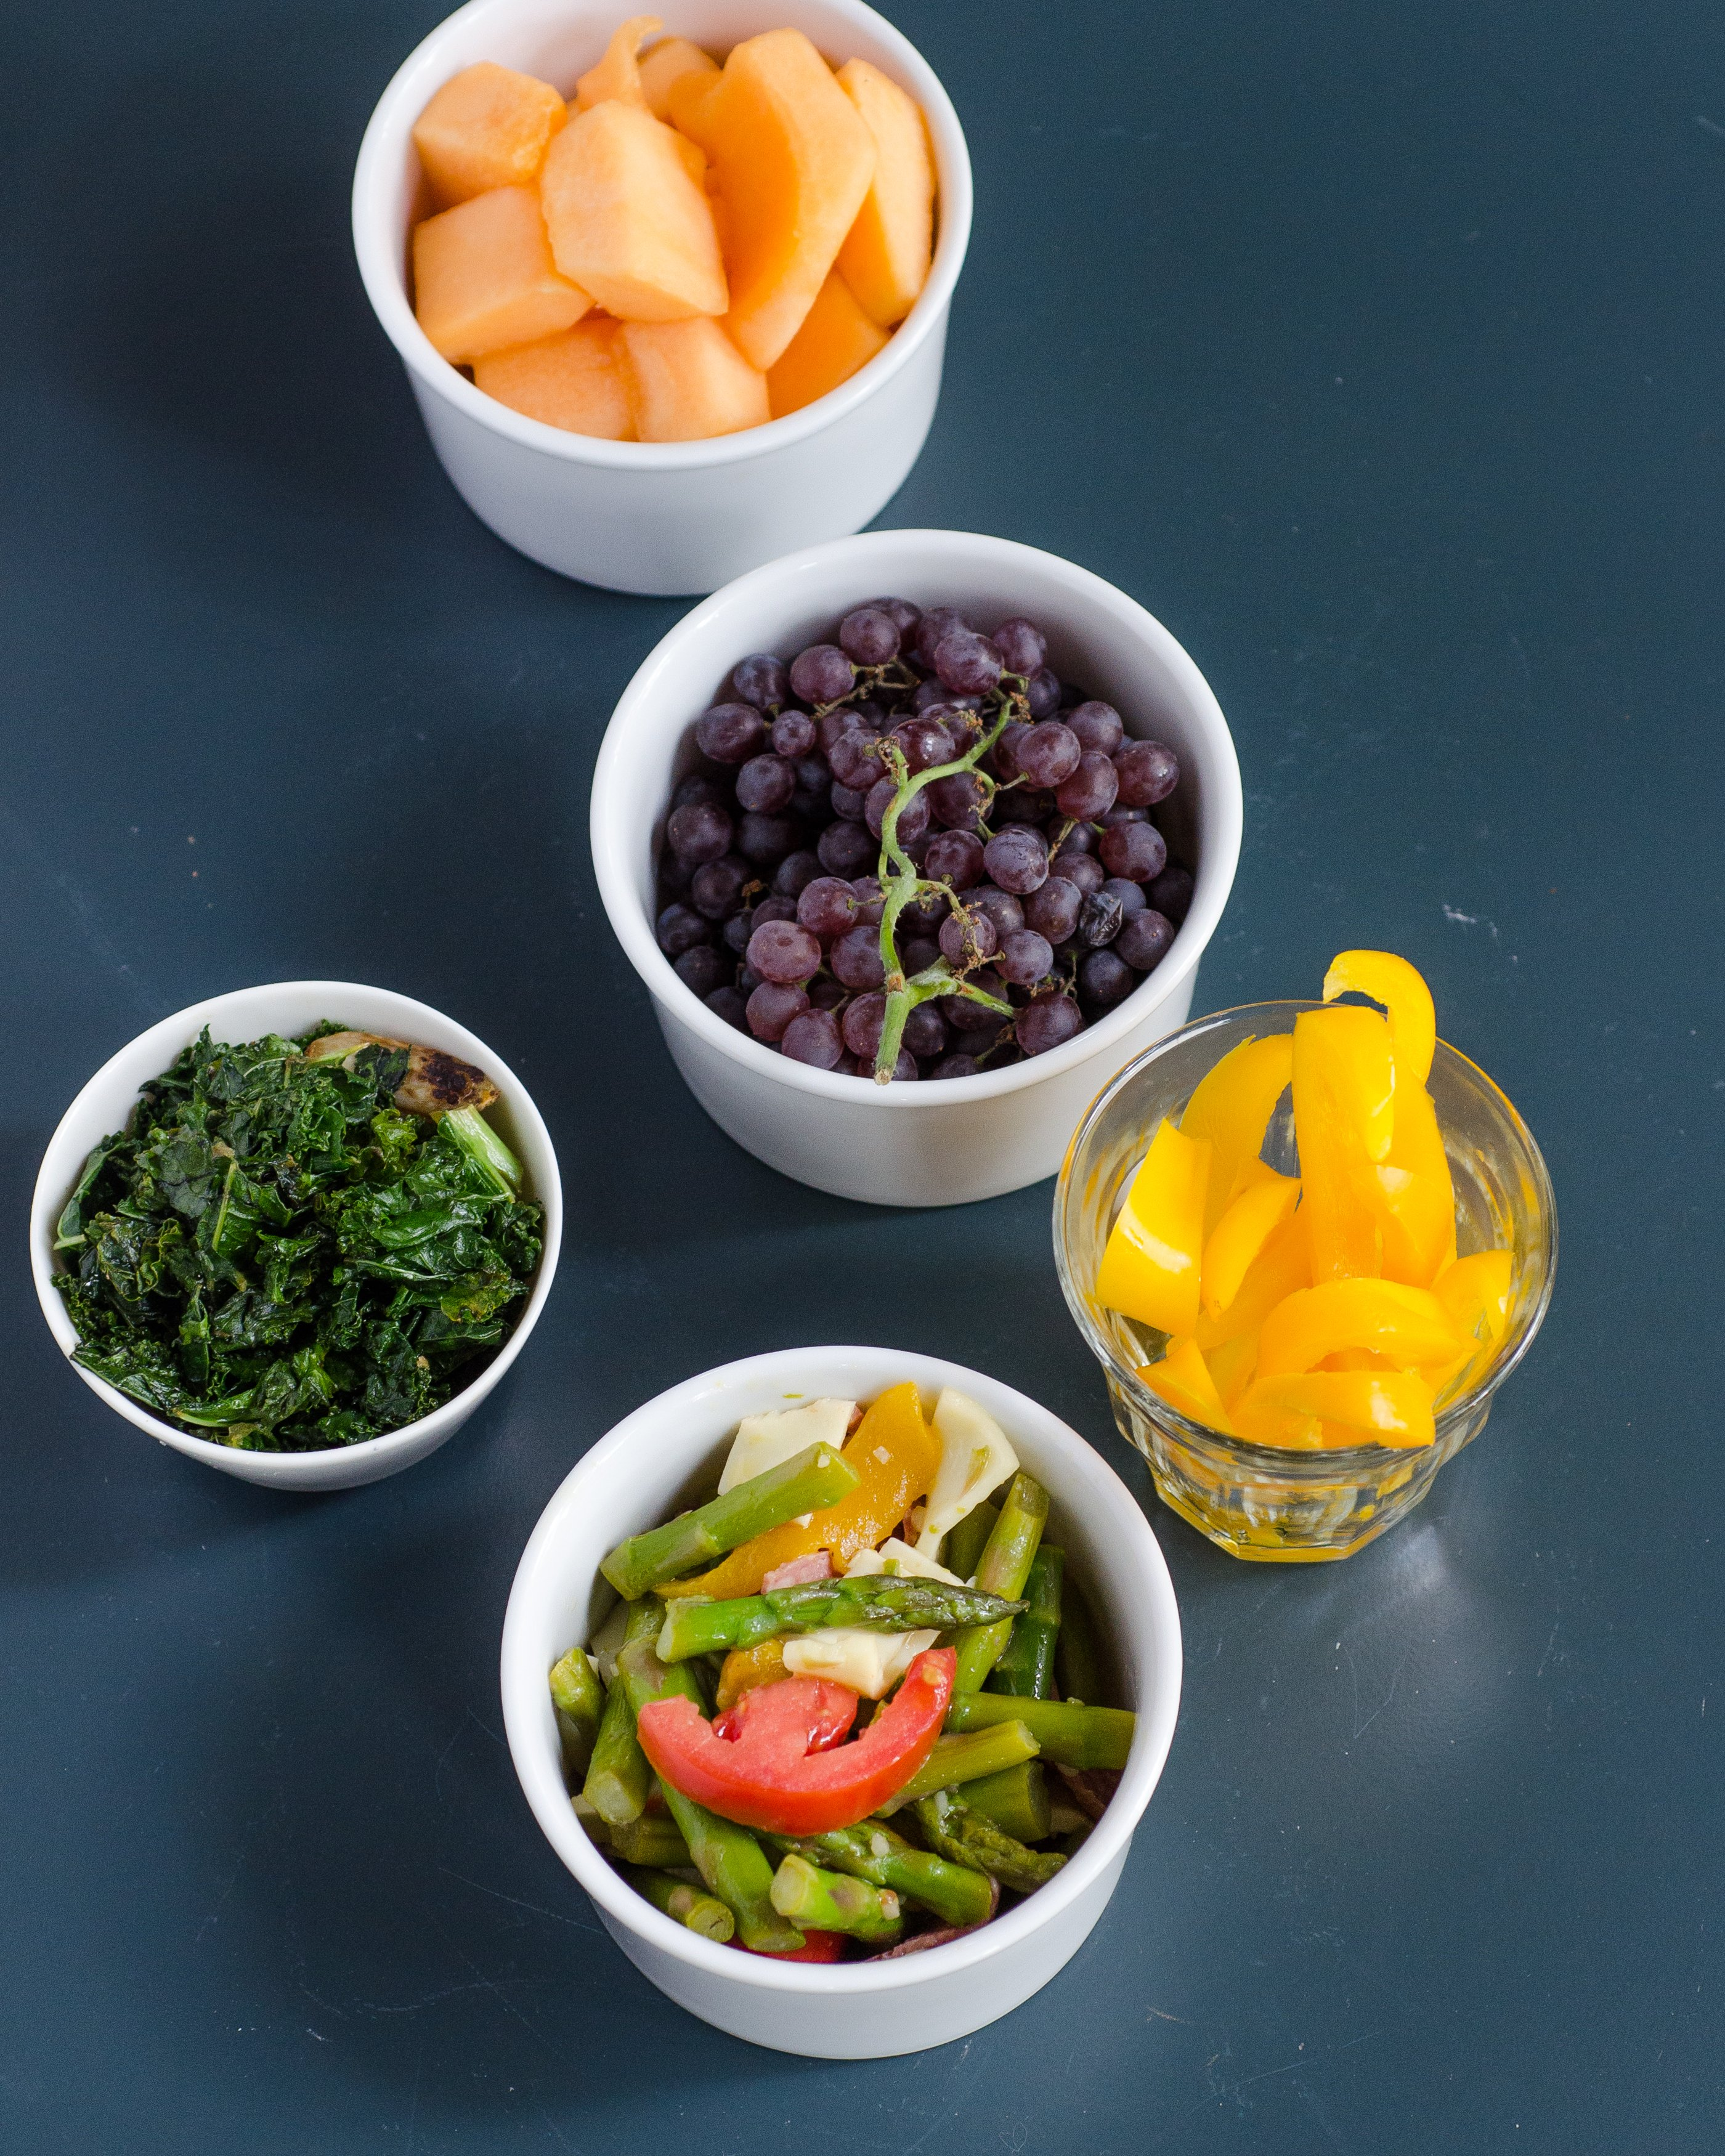 What Your Daily Servings of Fruits & Veggies Look Like | Kitchn